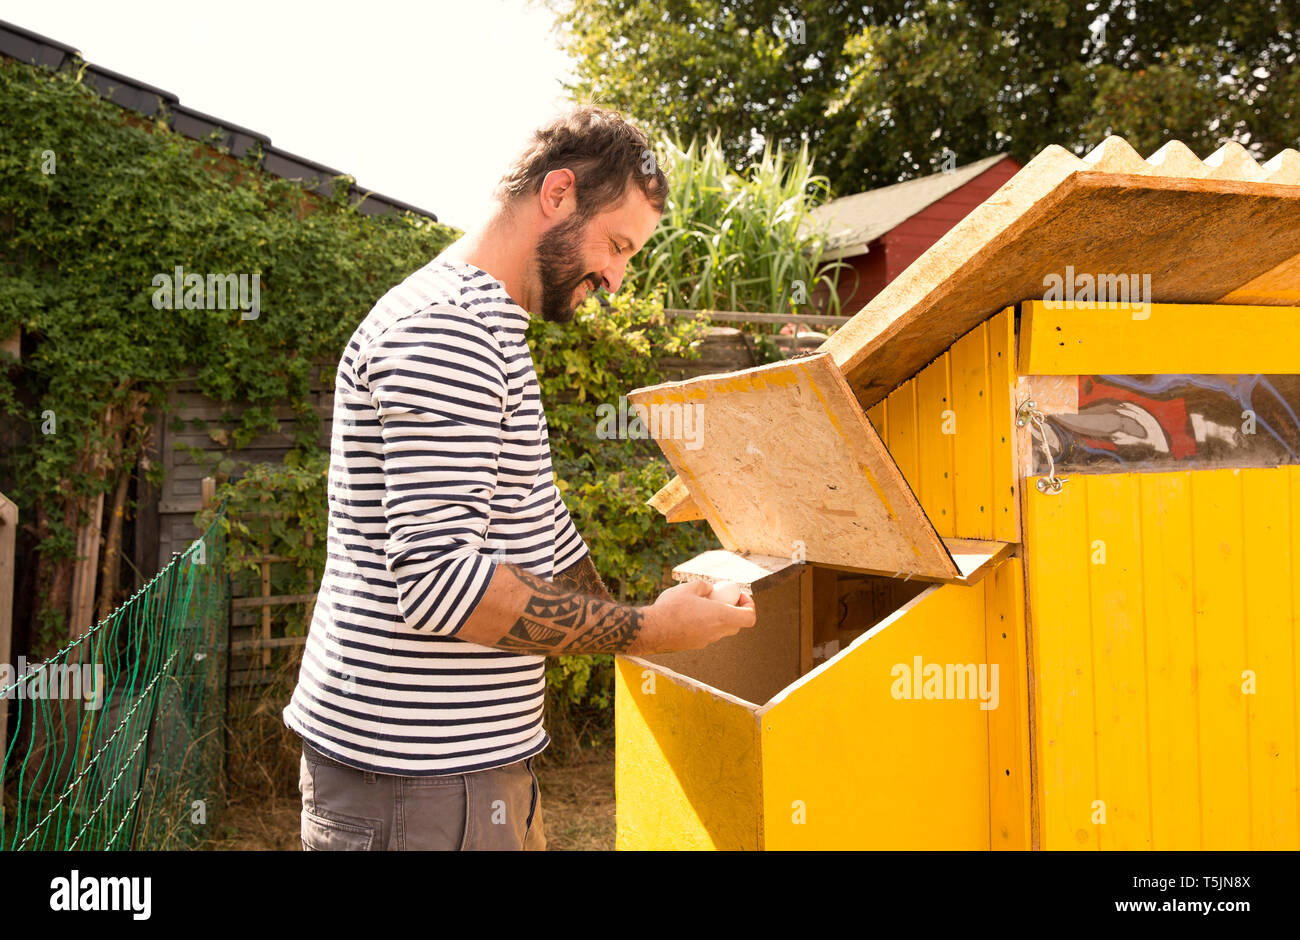 Man collecting eggs in chickenhouse Stock Photo